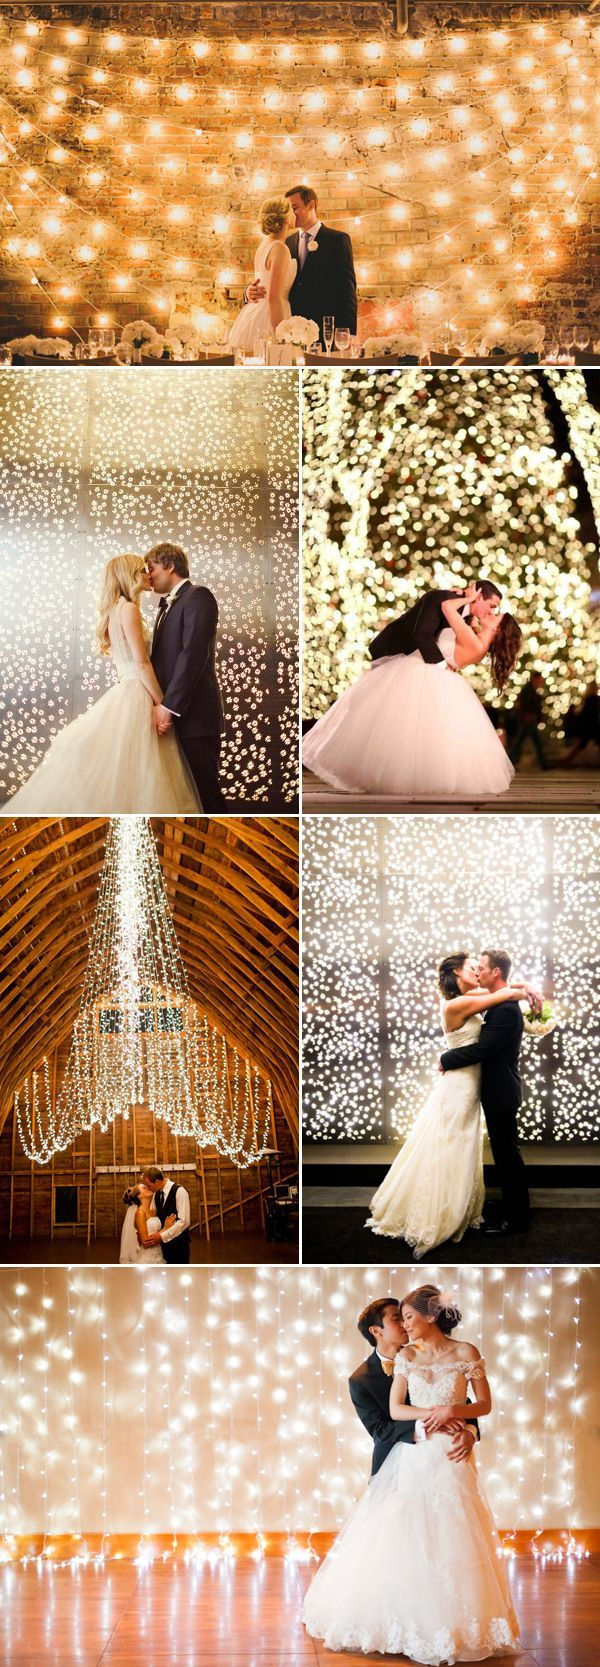 Light Wedding Backdrop Decoration Ideas